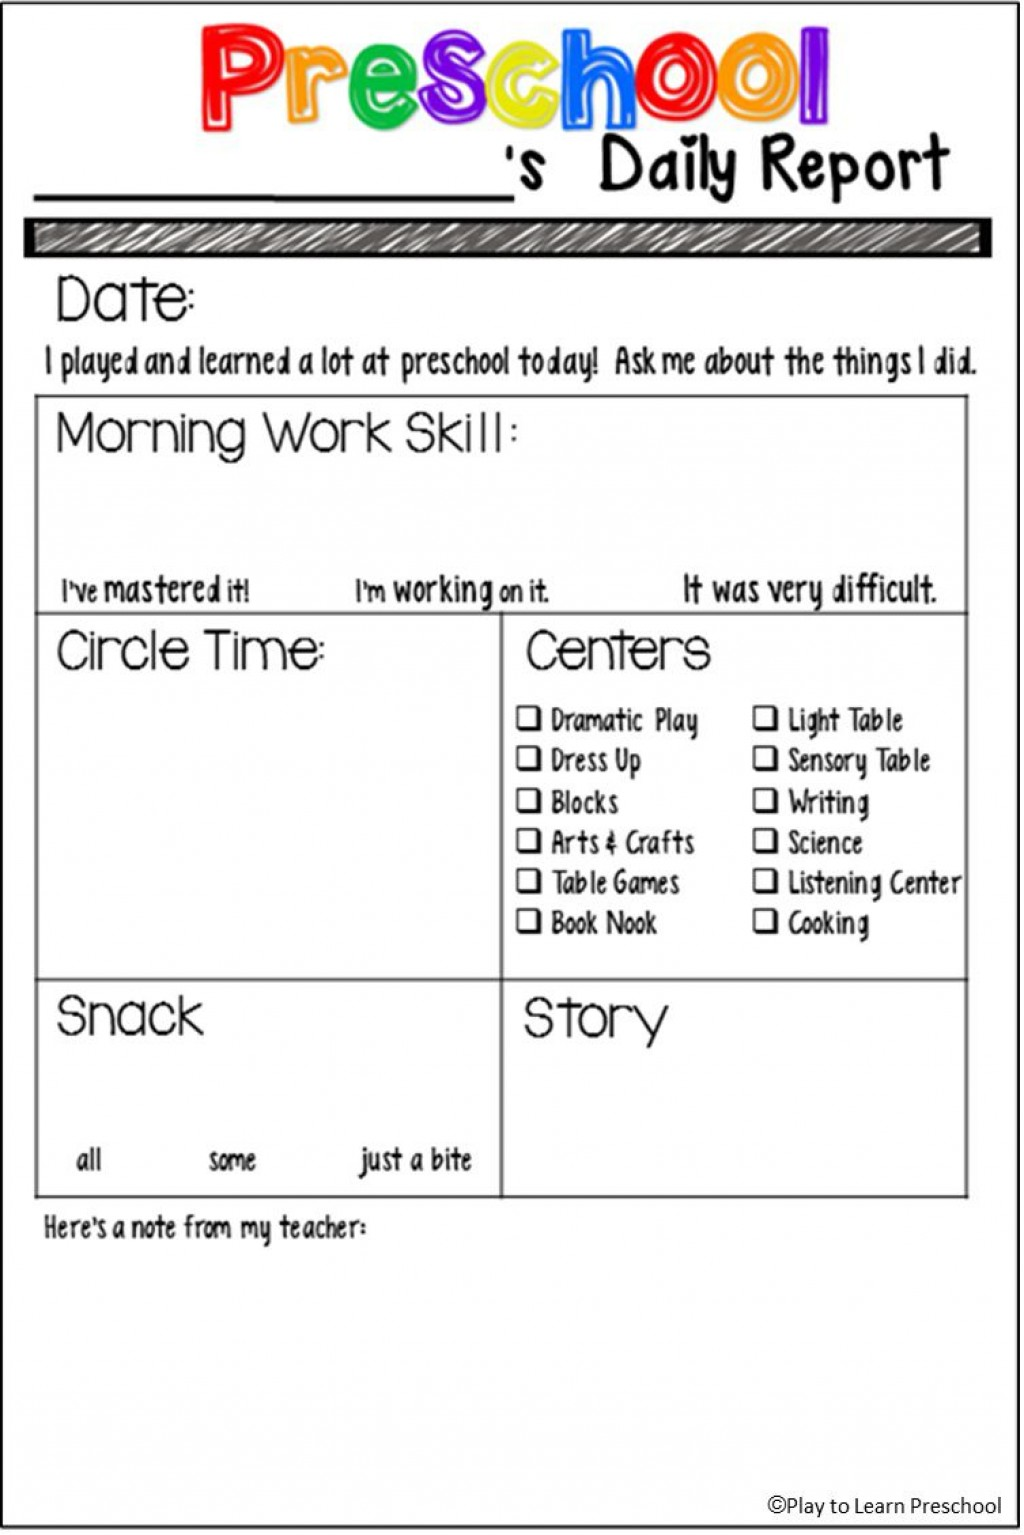 000 Amazing Preschool Daily Report Template Highest Clarity  Form Baby SheetLarge